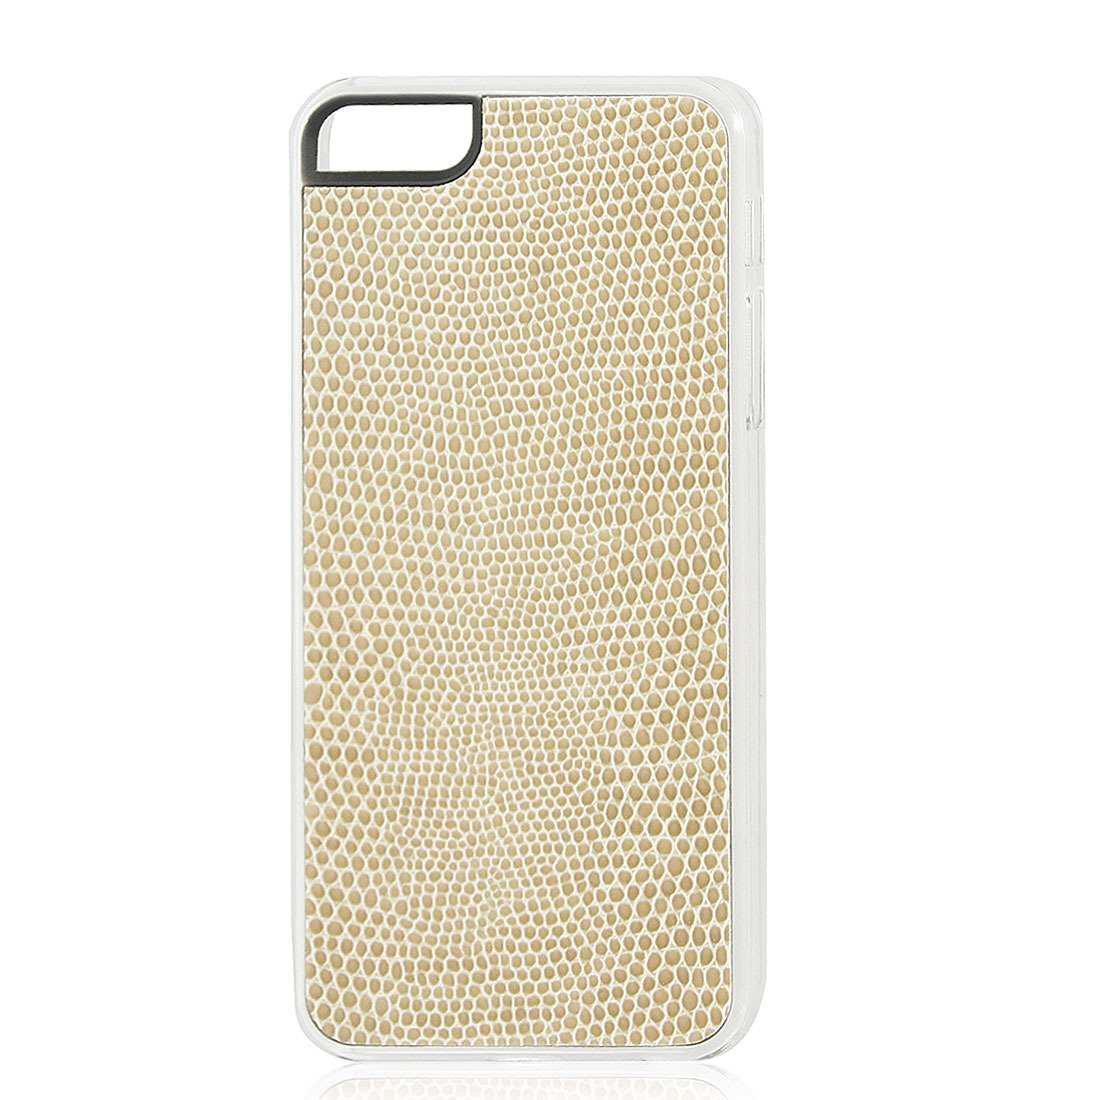 Khaki Snake Pattern Hard Back Case Cover Skin for iPhone 5 5